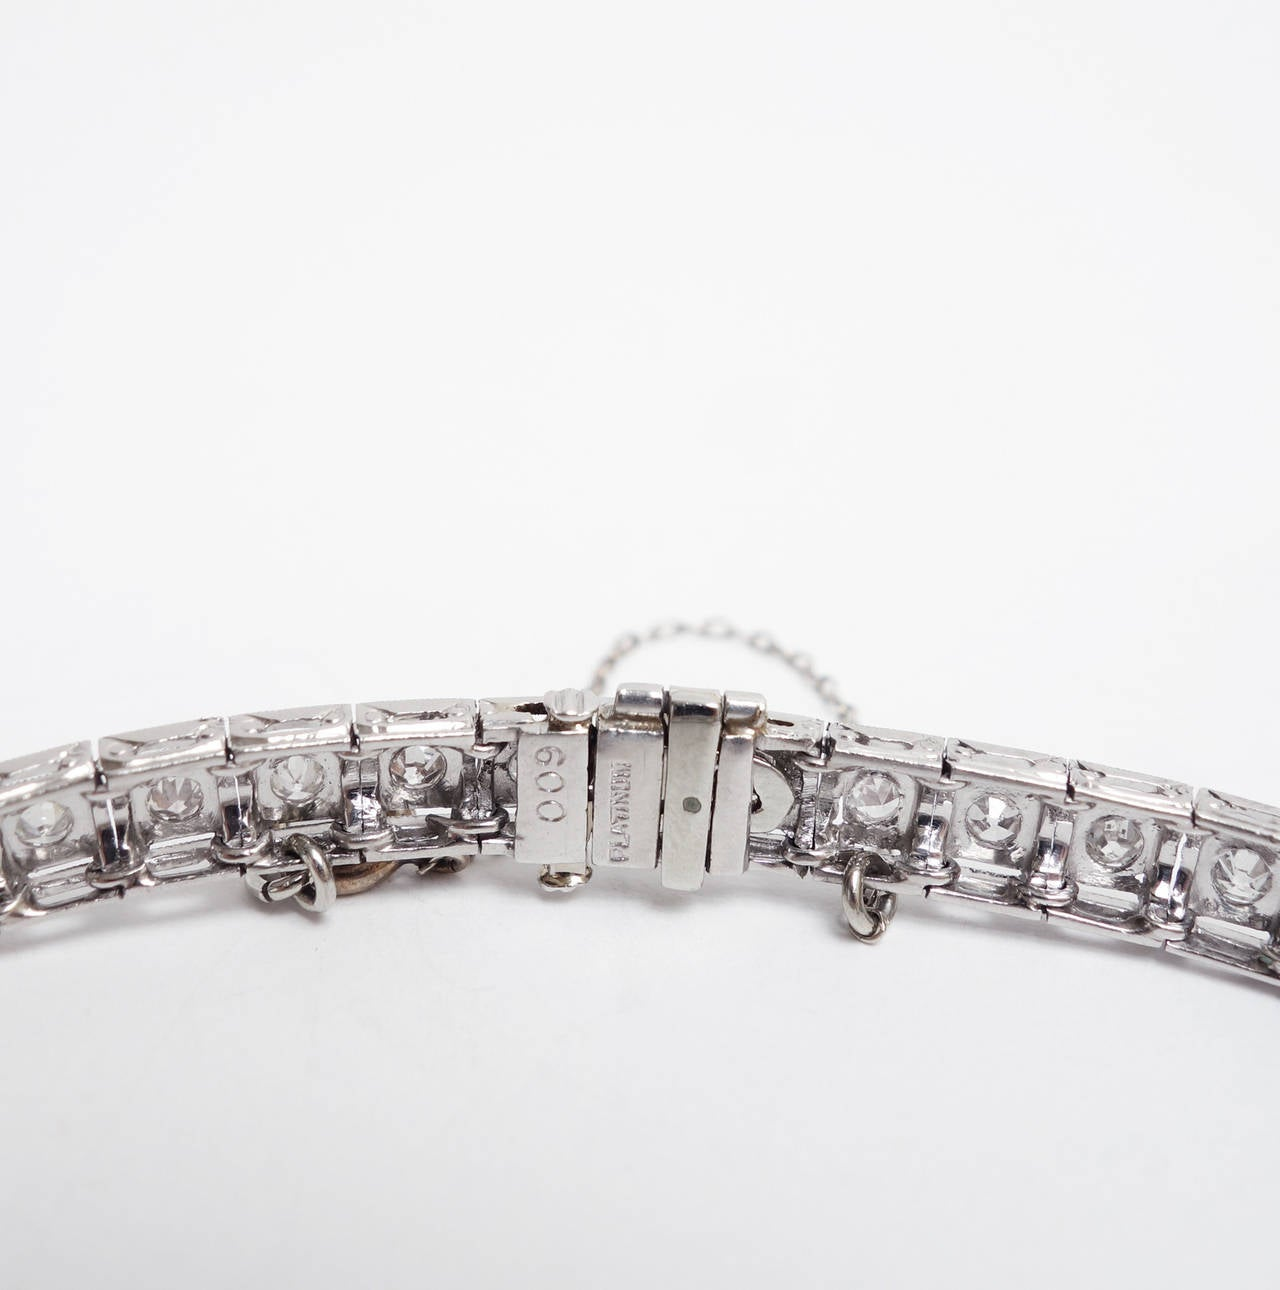 Elegant Art Deco Platinum Diamond and Sapphire bracelet. The diamond center piece features a marquise cut diamond, weighing approx. 0.20 ct, set within a bezel of french cut blue Sapphires. The bracelet is completed by 27 in-line diamond set box